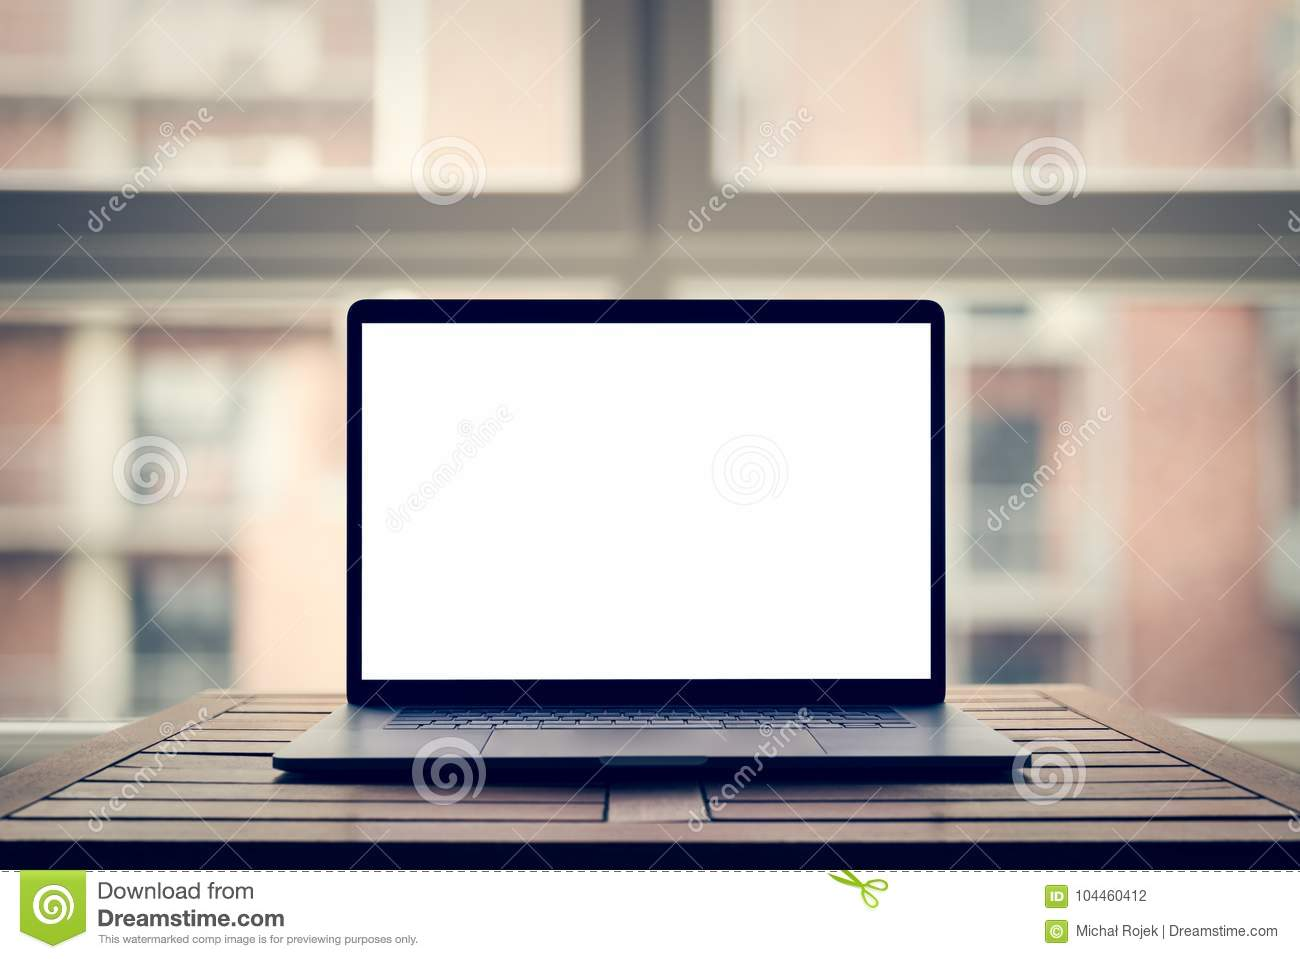 Laptop with blank screen on table in modern loft